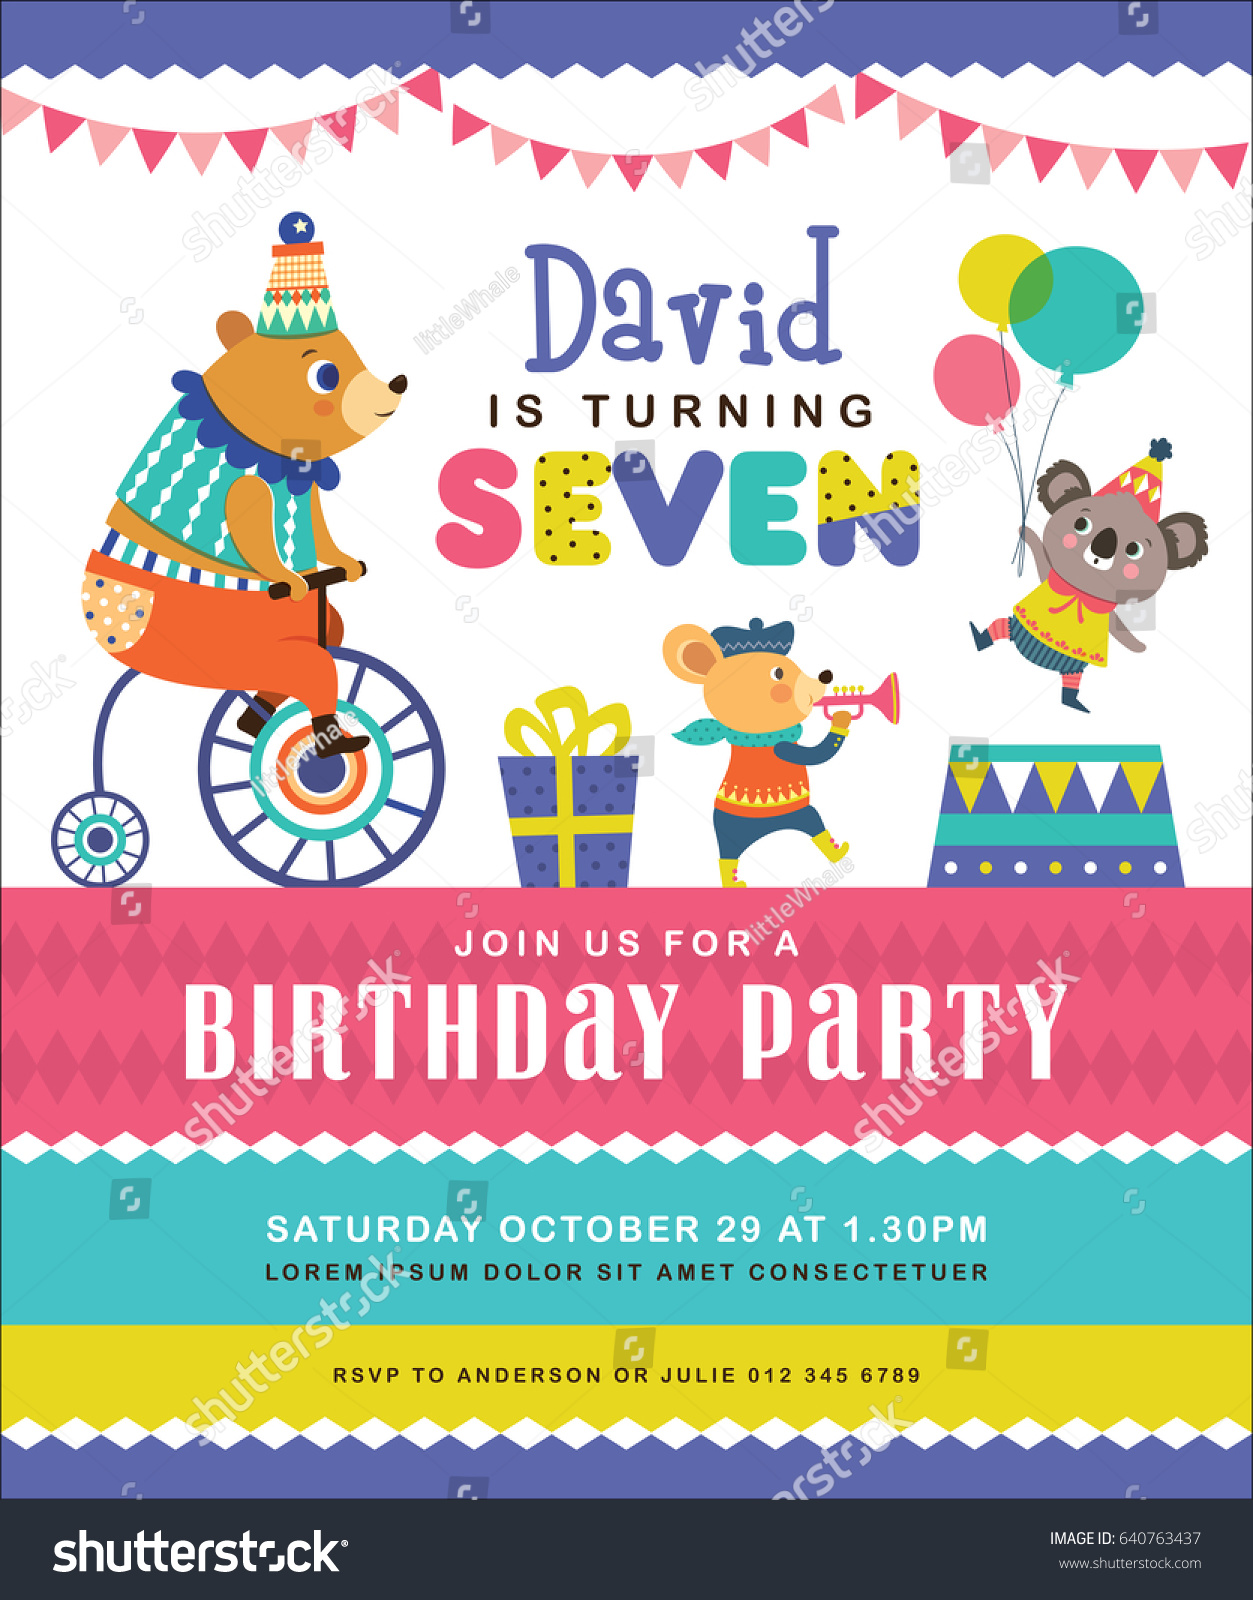 Kids birthday party invitation card circus em vetor stock 640763437 kids birthday party invitation card circus em vetor stock 640763437 shutterstock stopboris Images